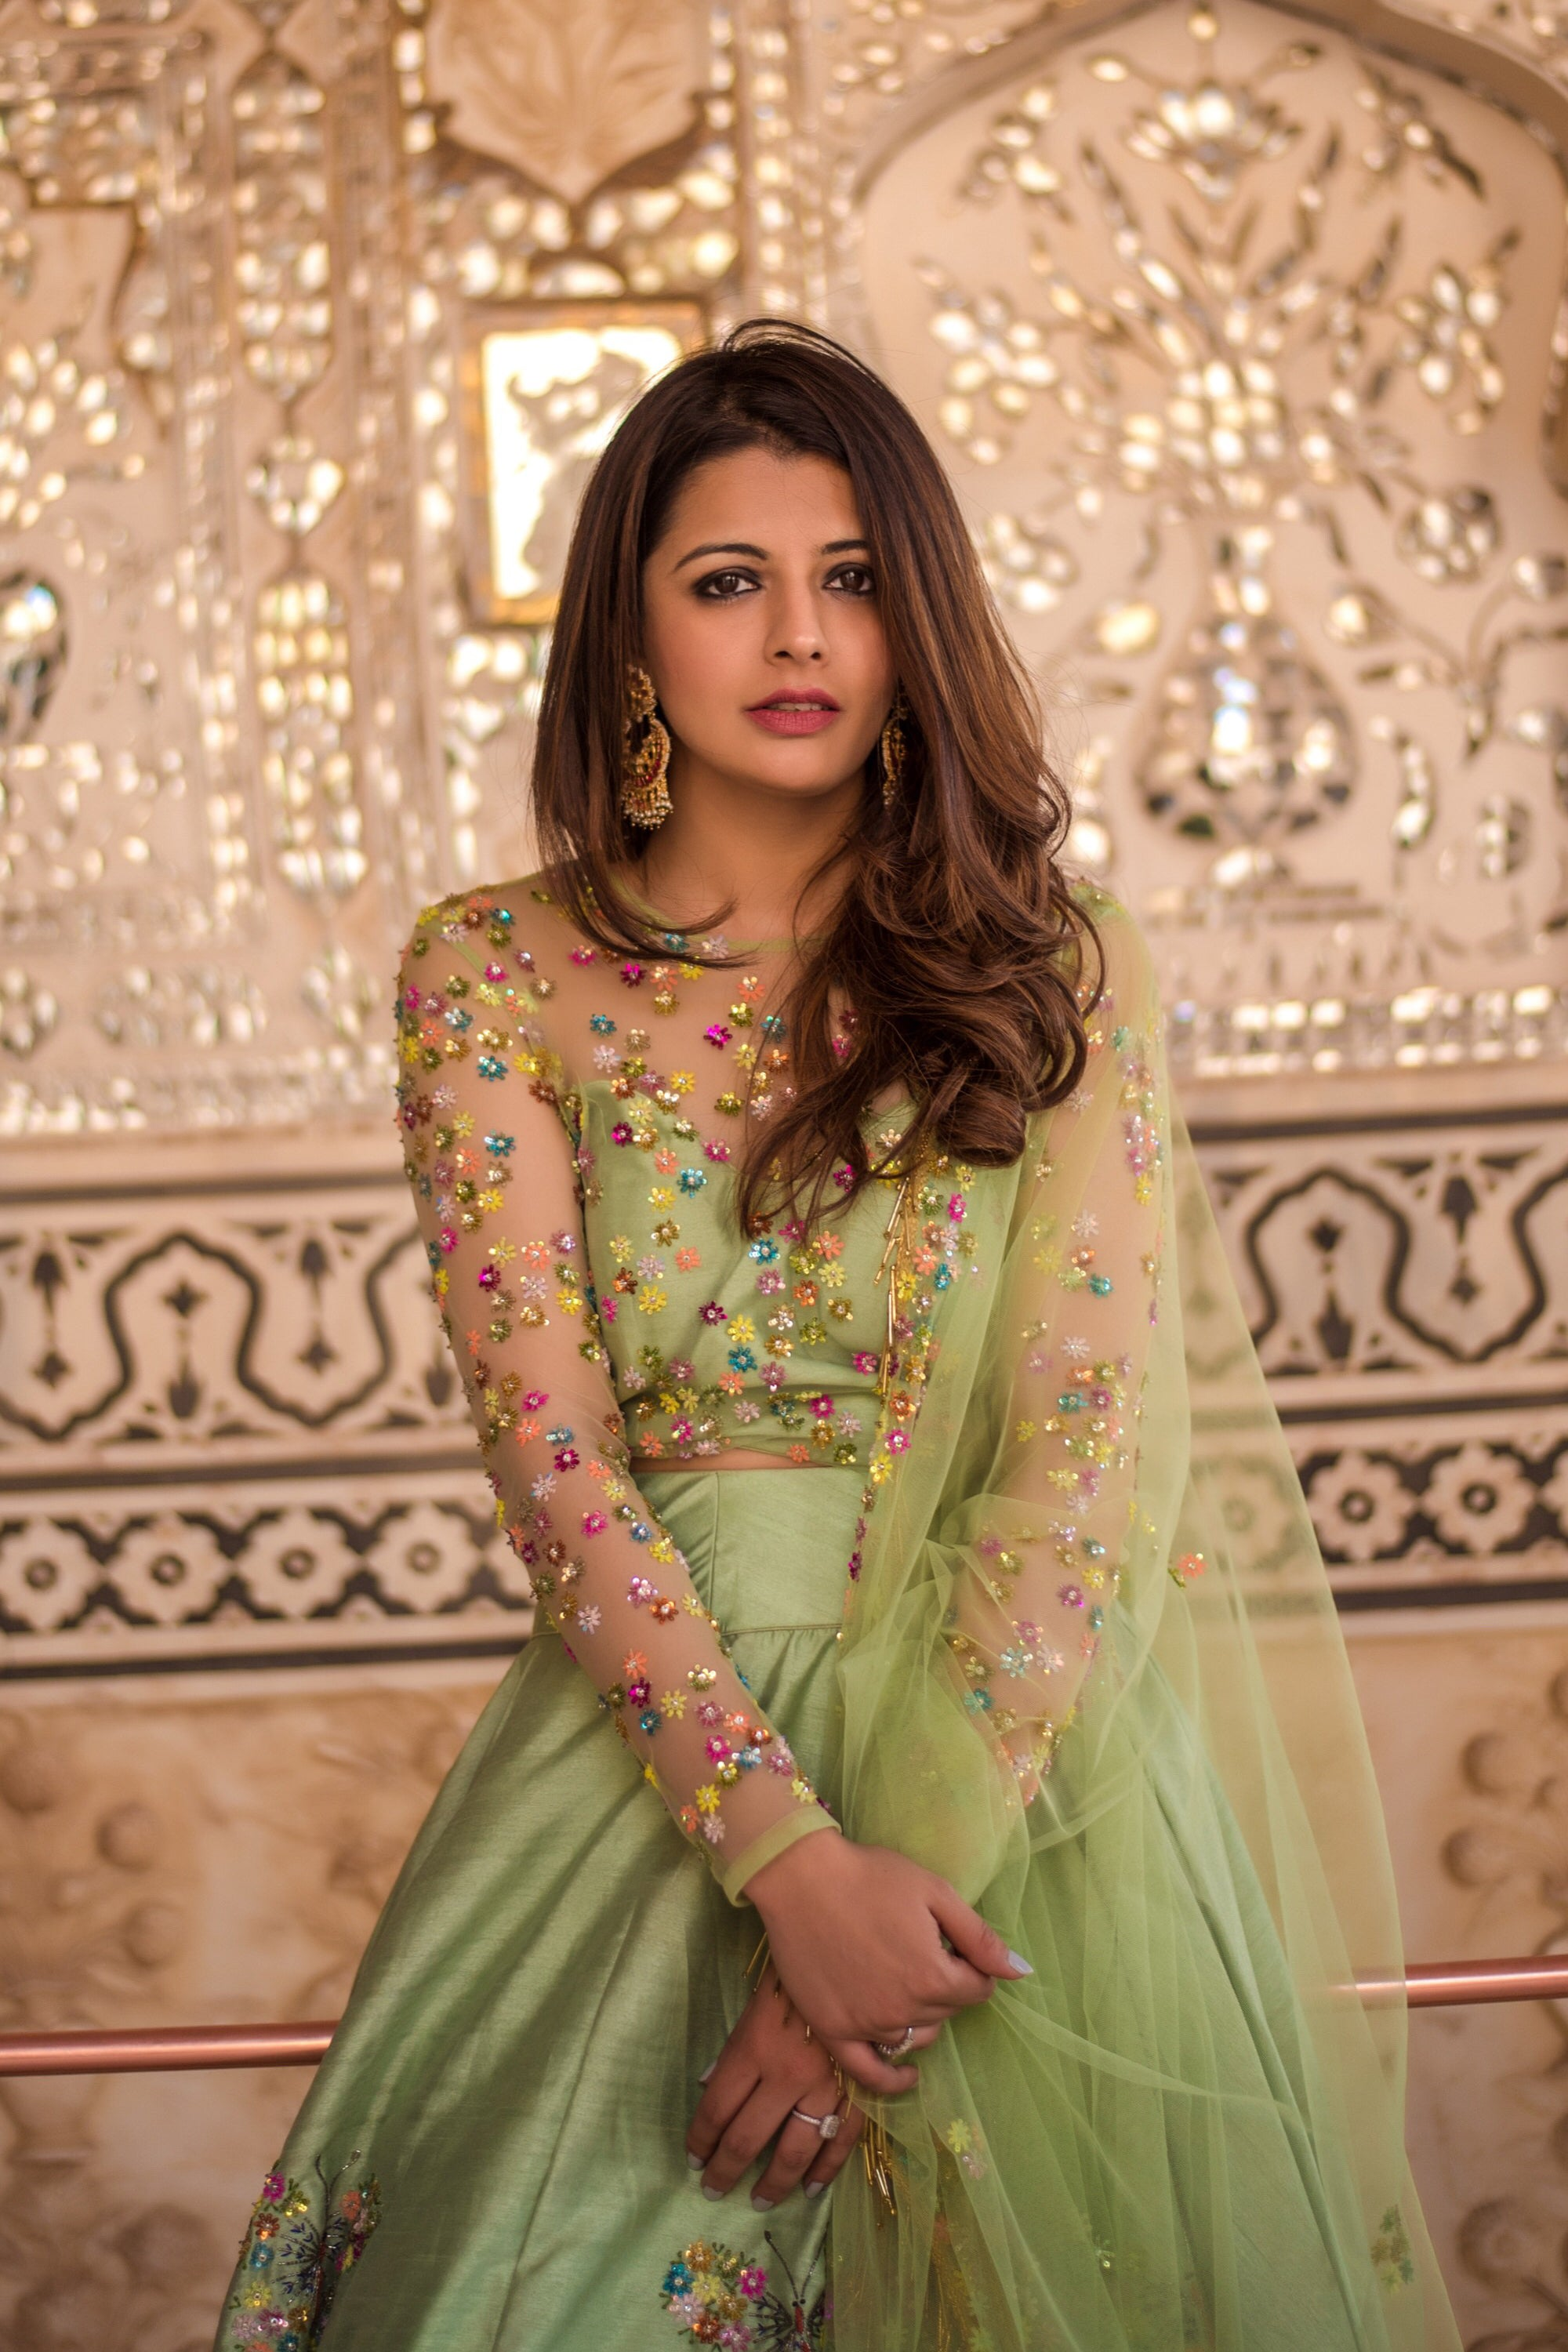 Tea Green Butterfly Lehenga With Embroidered Blouse & Dupatta